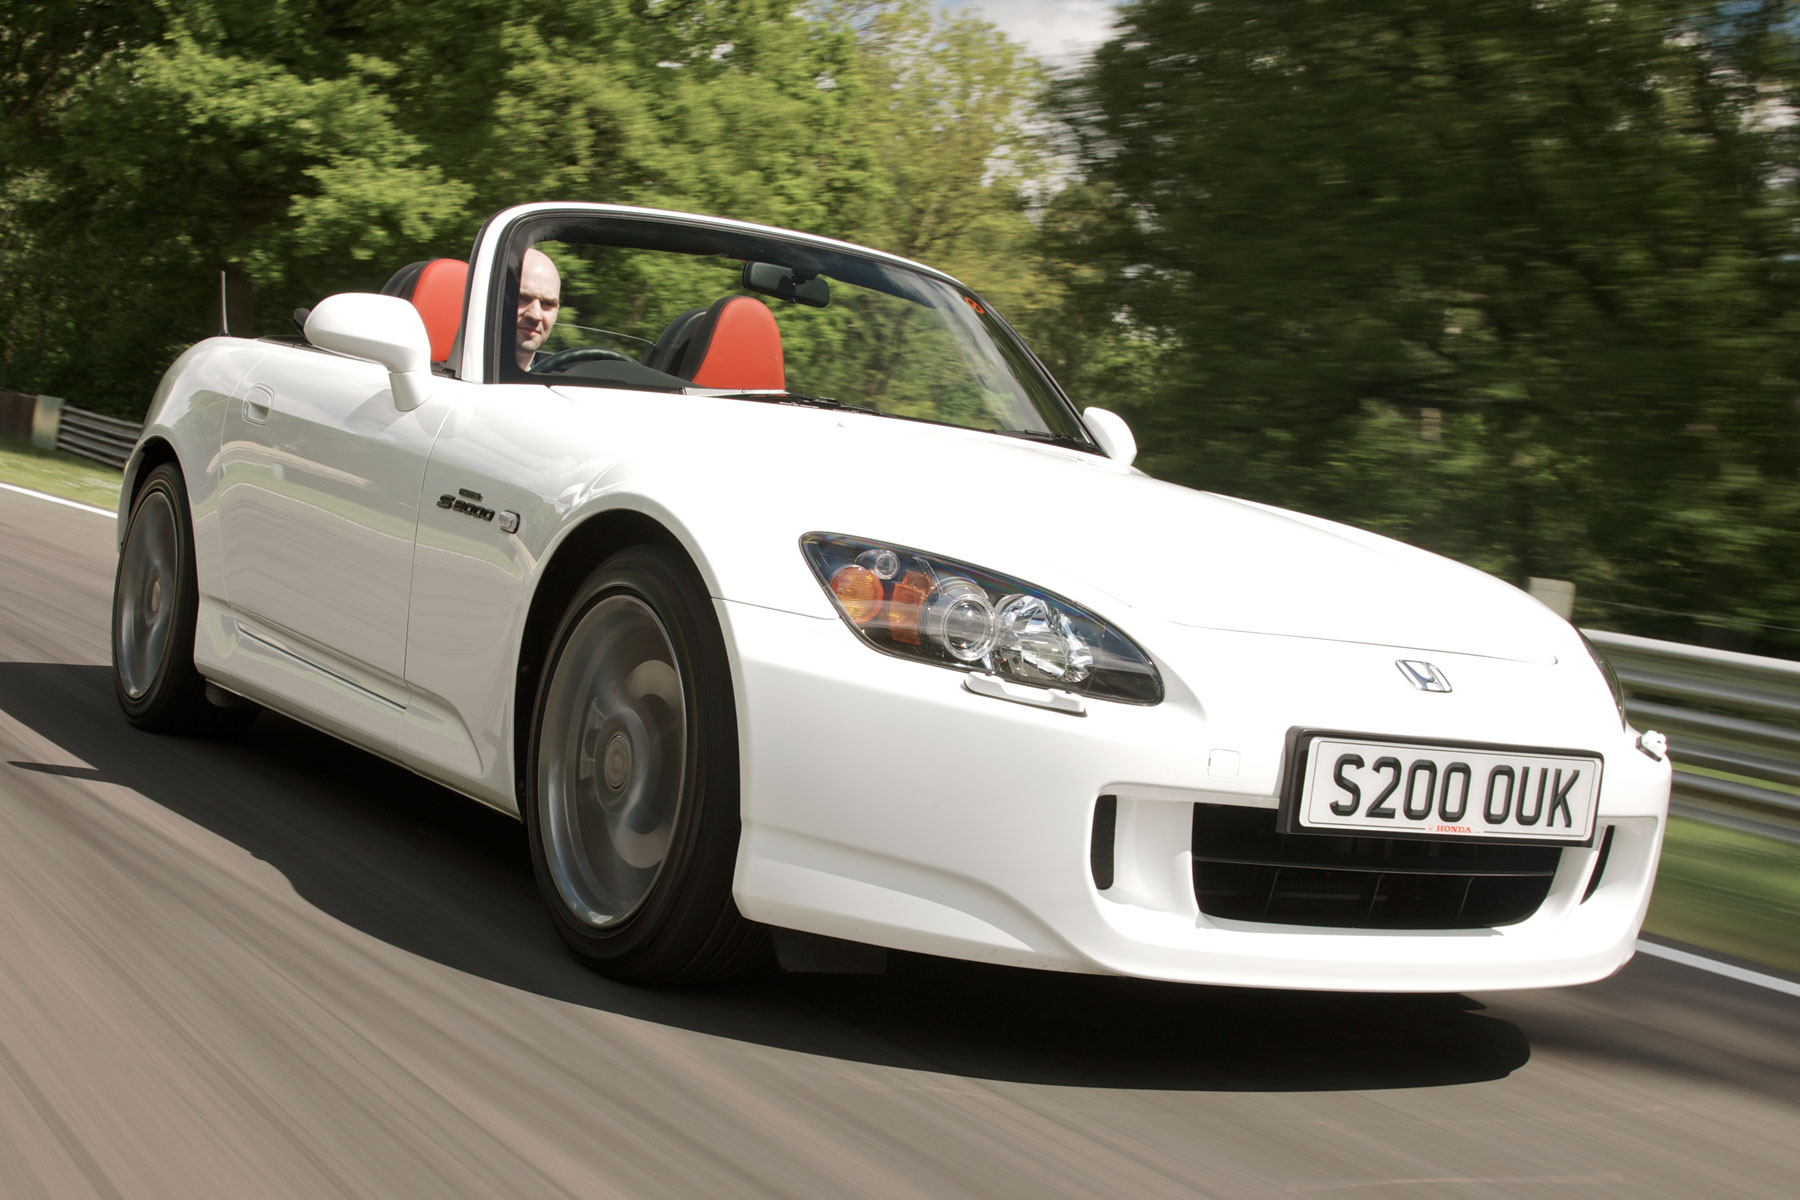 honda s2000 review a future classic that revs to 9 000rpm. Black Bedroom Furniture Sets. Home Design Ideas